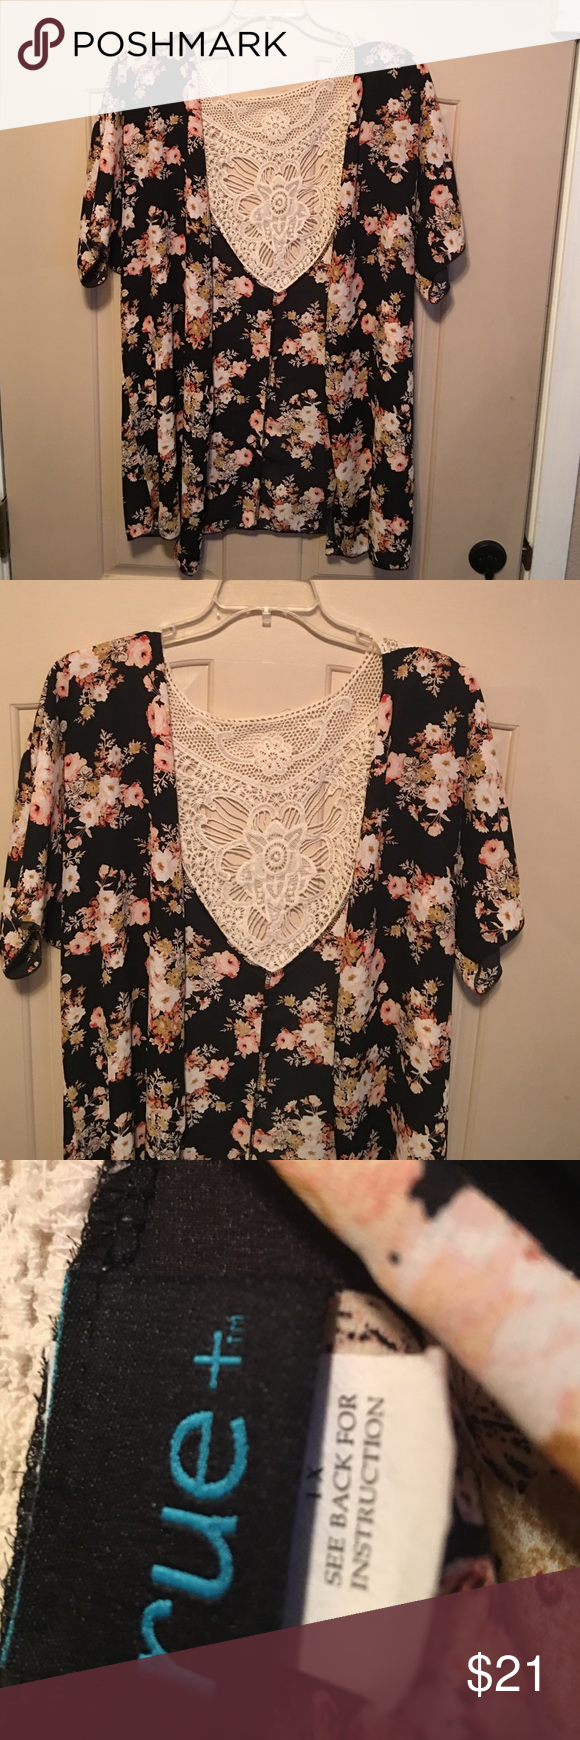 Plus size 1x kimono RUE 21 PRICE IS FIRM. Like NEW! Only wore it 1x. Rue 21 Other